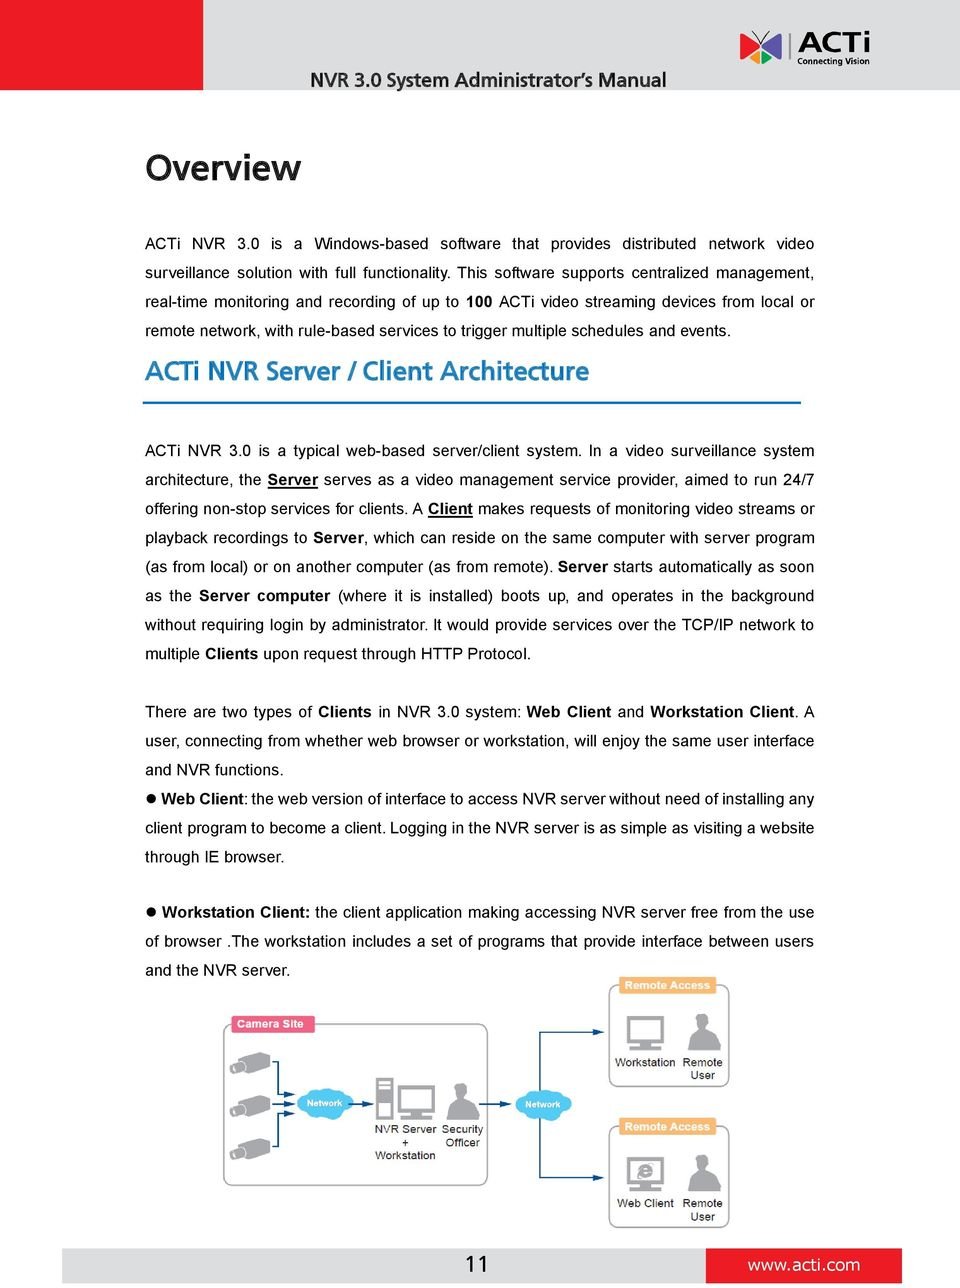 schedules and events. ACTi NVR Server / Client Architecture ACTi NVR 3.0 is a typical web-based server/client system.